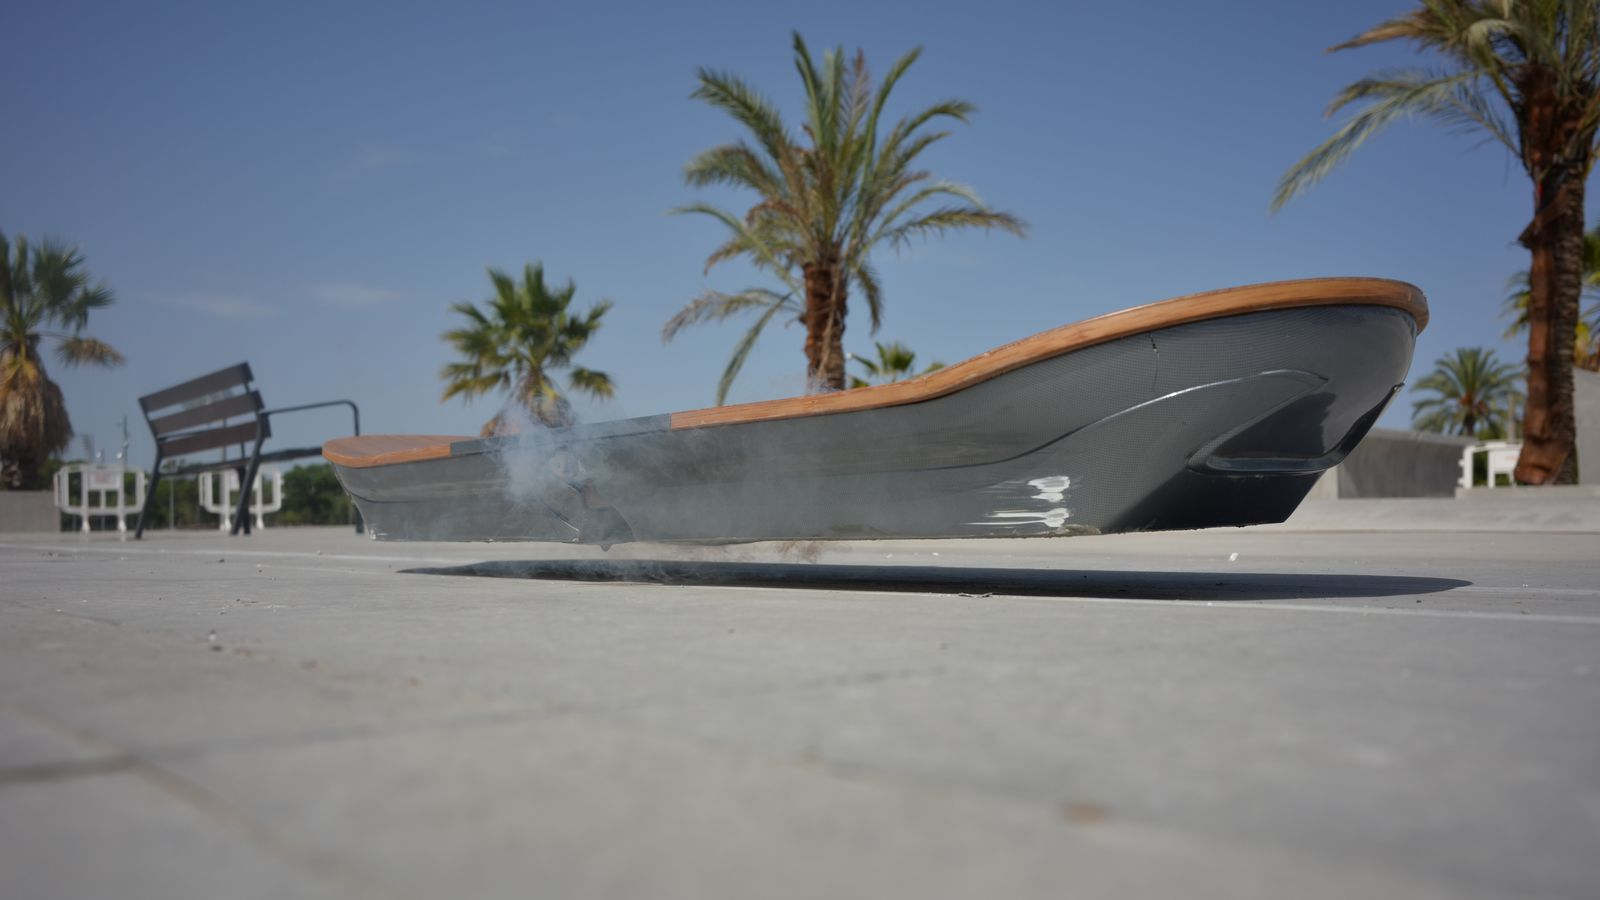 Lexus Hoverboard Price >> I Rode The Lexus Hoverboard At A Skatepark In Spain The Verge